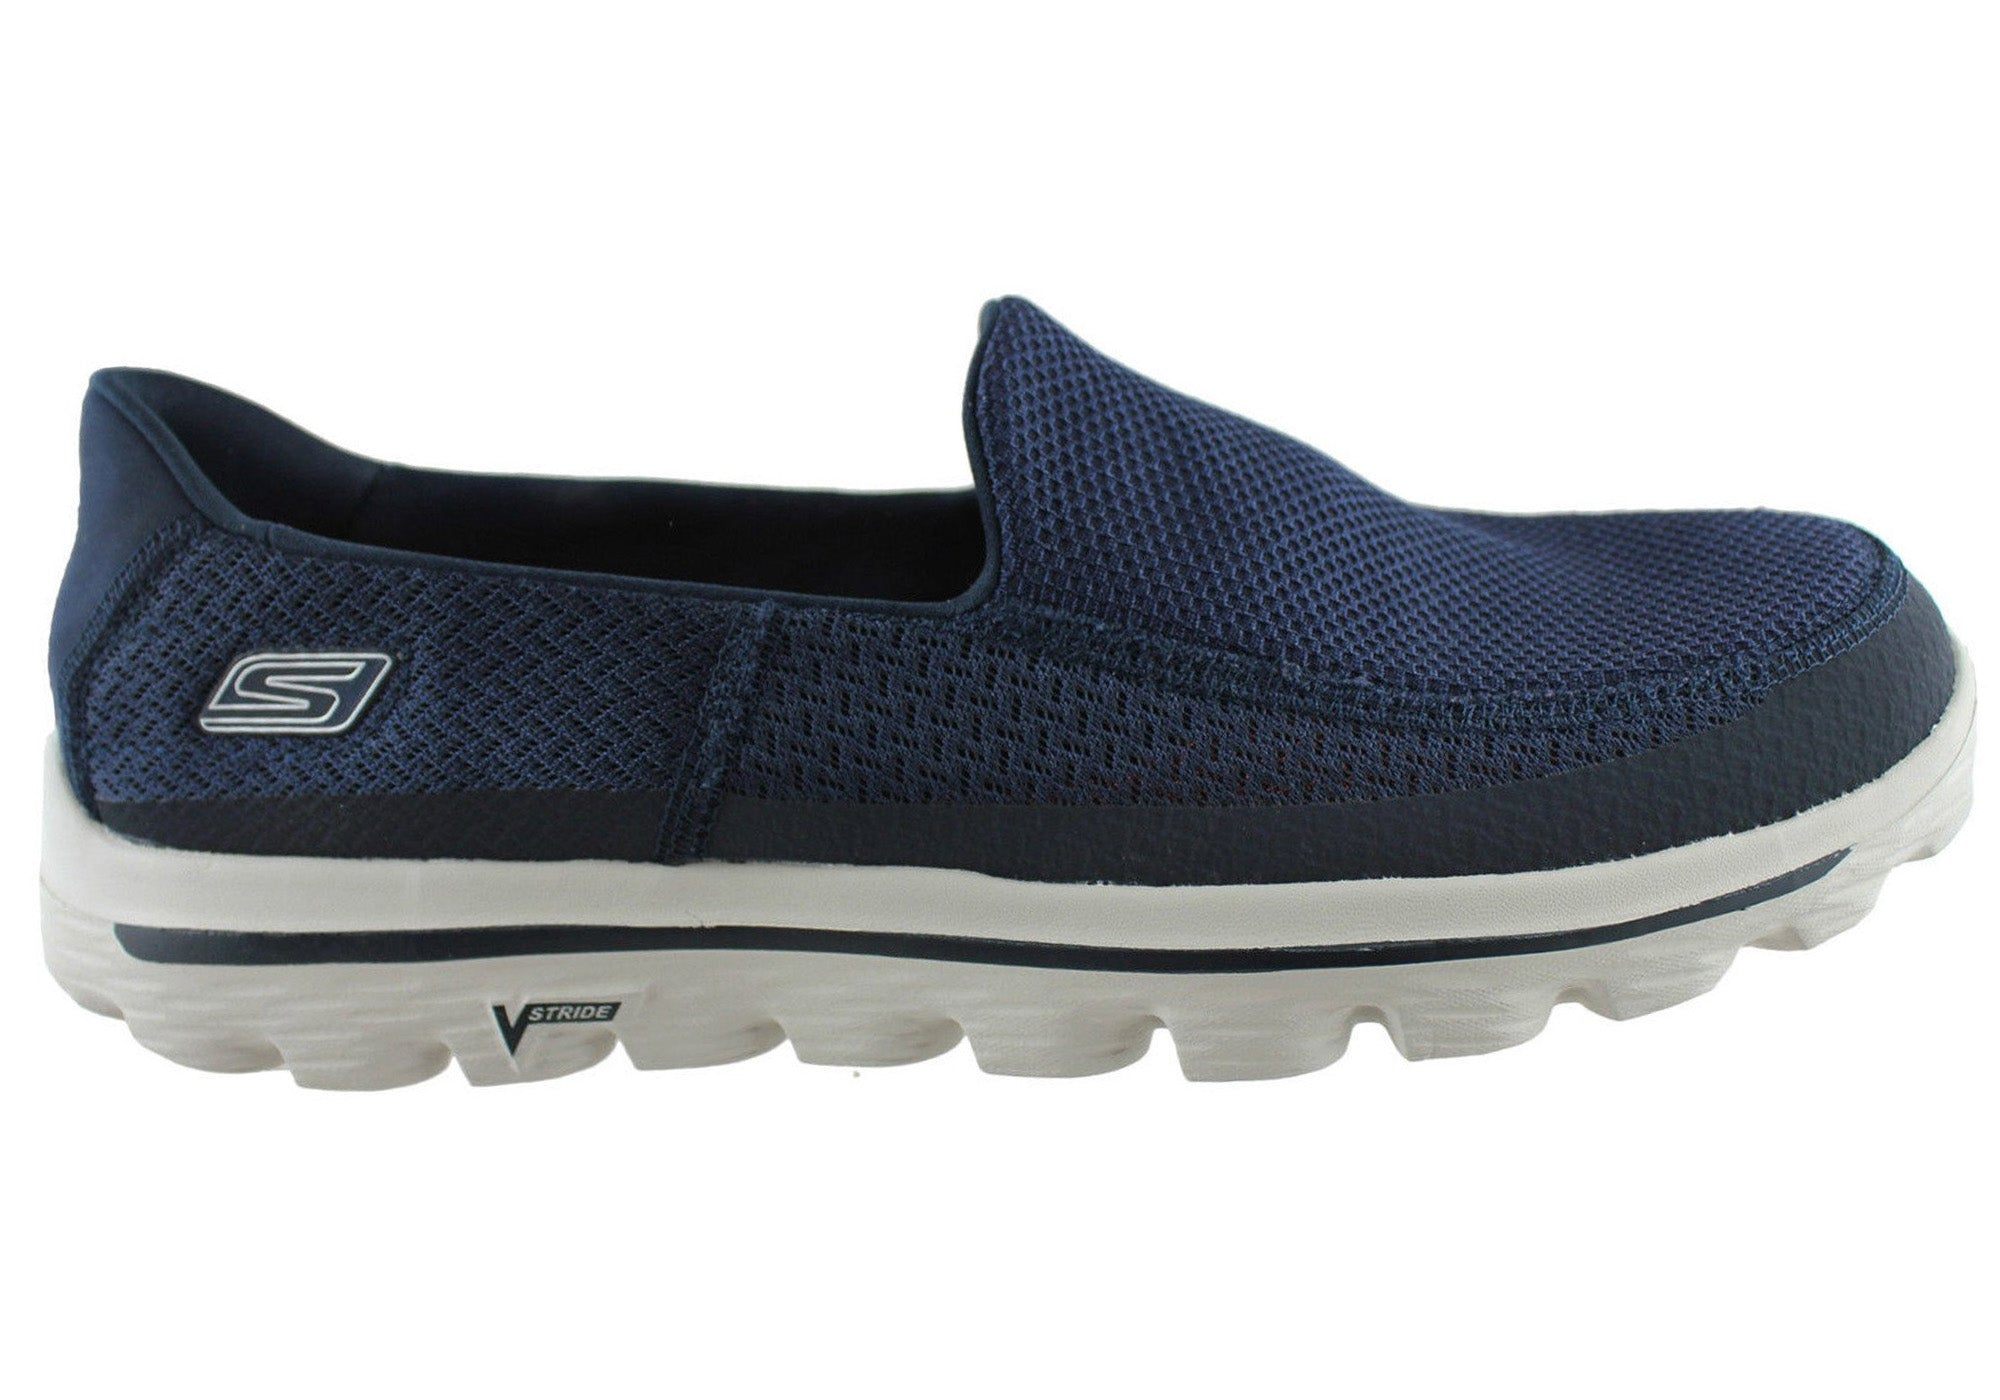 8ce6d943403d NEW SKECHERS GO WALK 2 MENS COMFORTABLE SLIP ON CASUAL SHOES